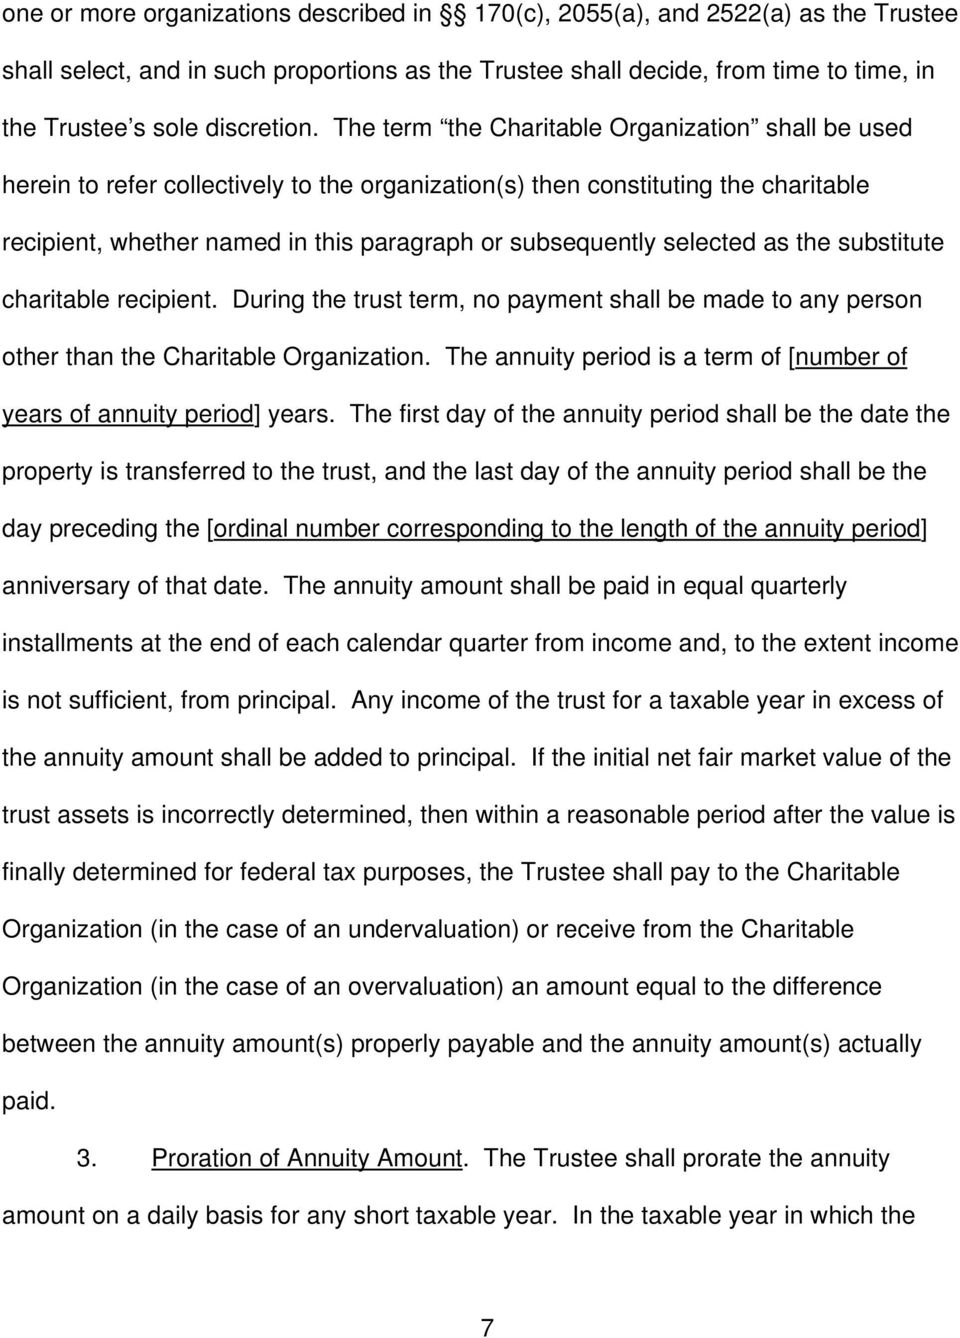 The term the Charitable Organization shall be used herein to refer collectively to the organization(s) then constituting the charitable recipient, whether named in this paragraph or subsequently